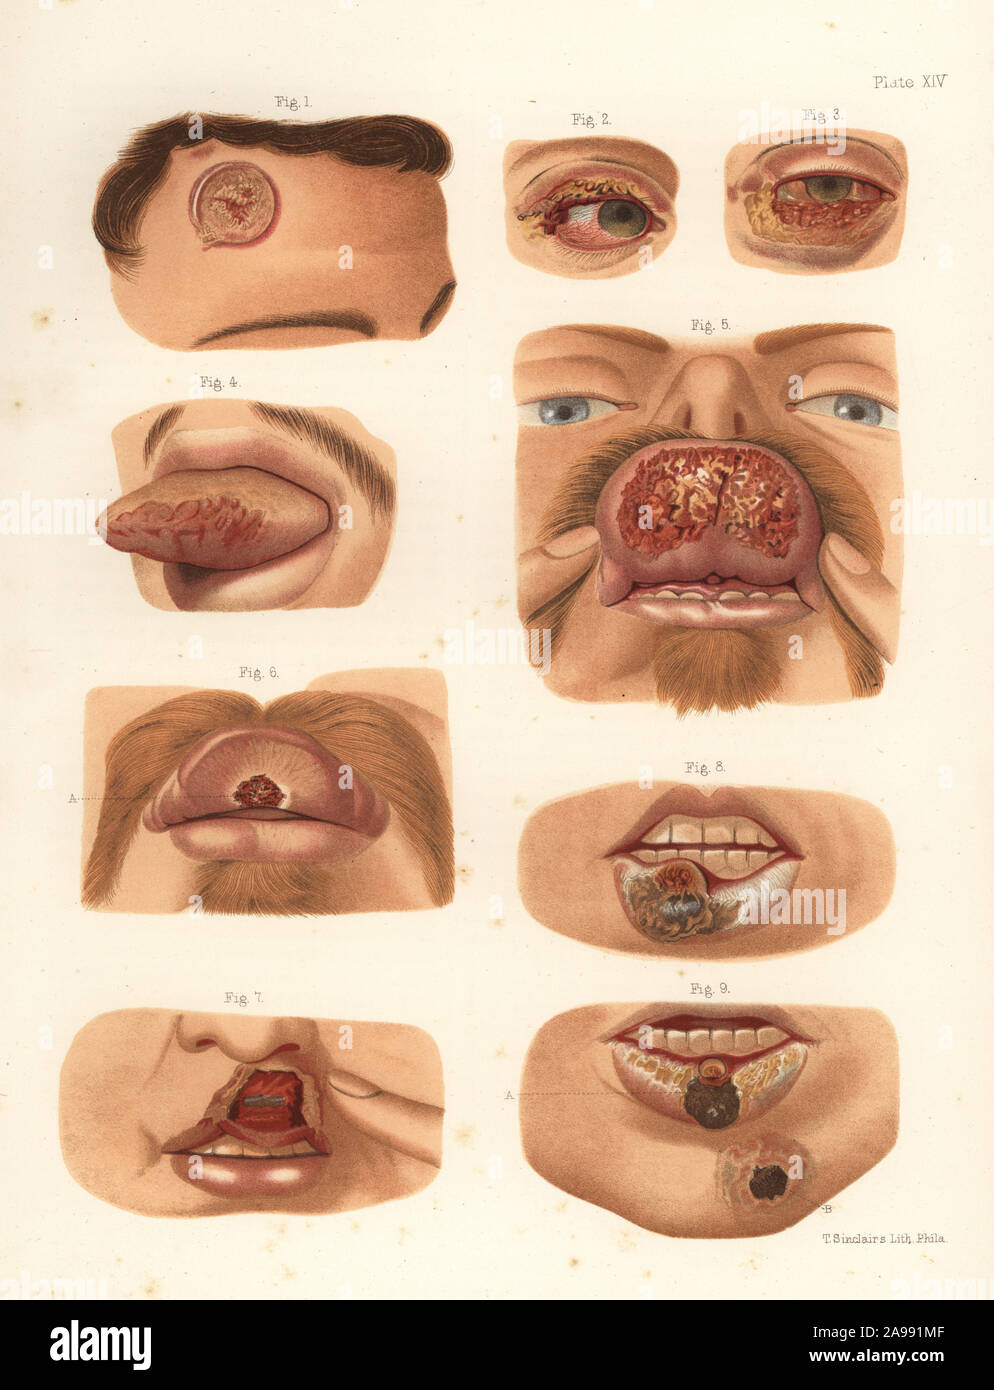 Syphilitic chancres on the face. Indurated chancres to the forehead, eyelids, tongue and lips, and ecthymatous chancre to the chin. Chromolithograph by T. Sinclaire from Freeman J. Bumstead's Atlas of Venereal Diseases, Henry C. Lea, Philadelphia, 1868. First American edition of Auguste Cullerier's Precis iconographique des maladies veneriennes. Chromolithograph by T. Sinclaire from Freeman J. Bumstead's Atlas of Venereal Diseases, Henry C. Lea, Philadelphia, 1868. First American edition of Auguste Cullerier's Precis iconographique des maladies veneriennes. Stock Photo